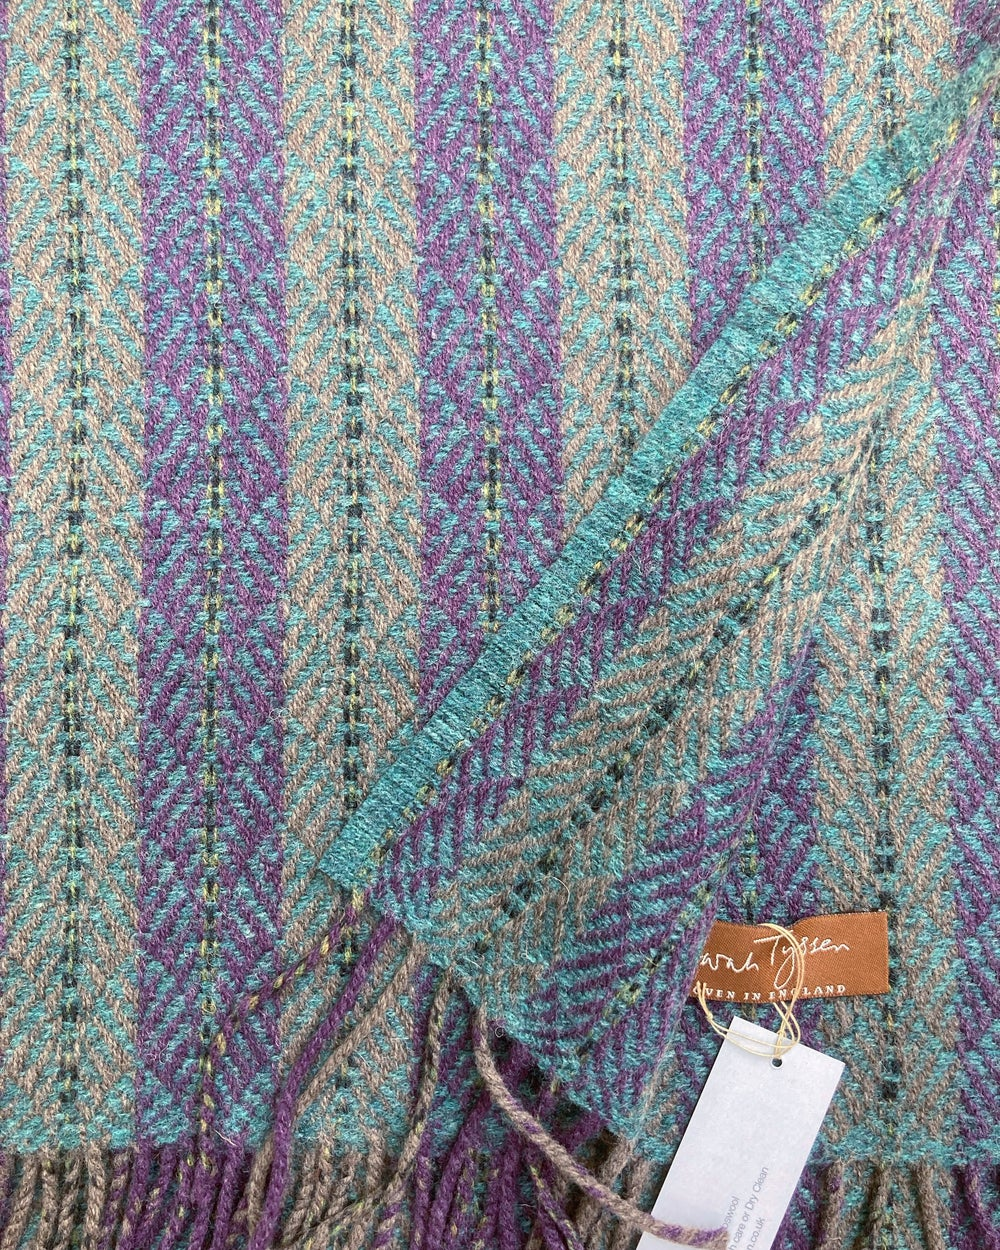 Image of Wisteria & Teal 'Chrysler' scarf